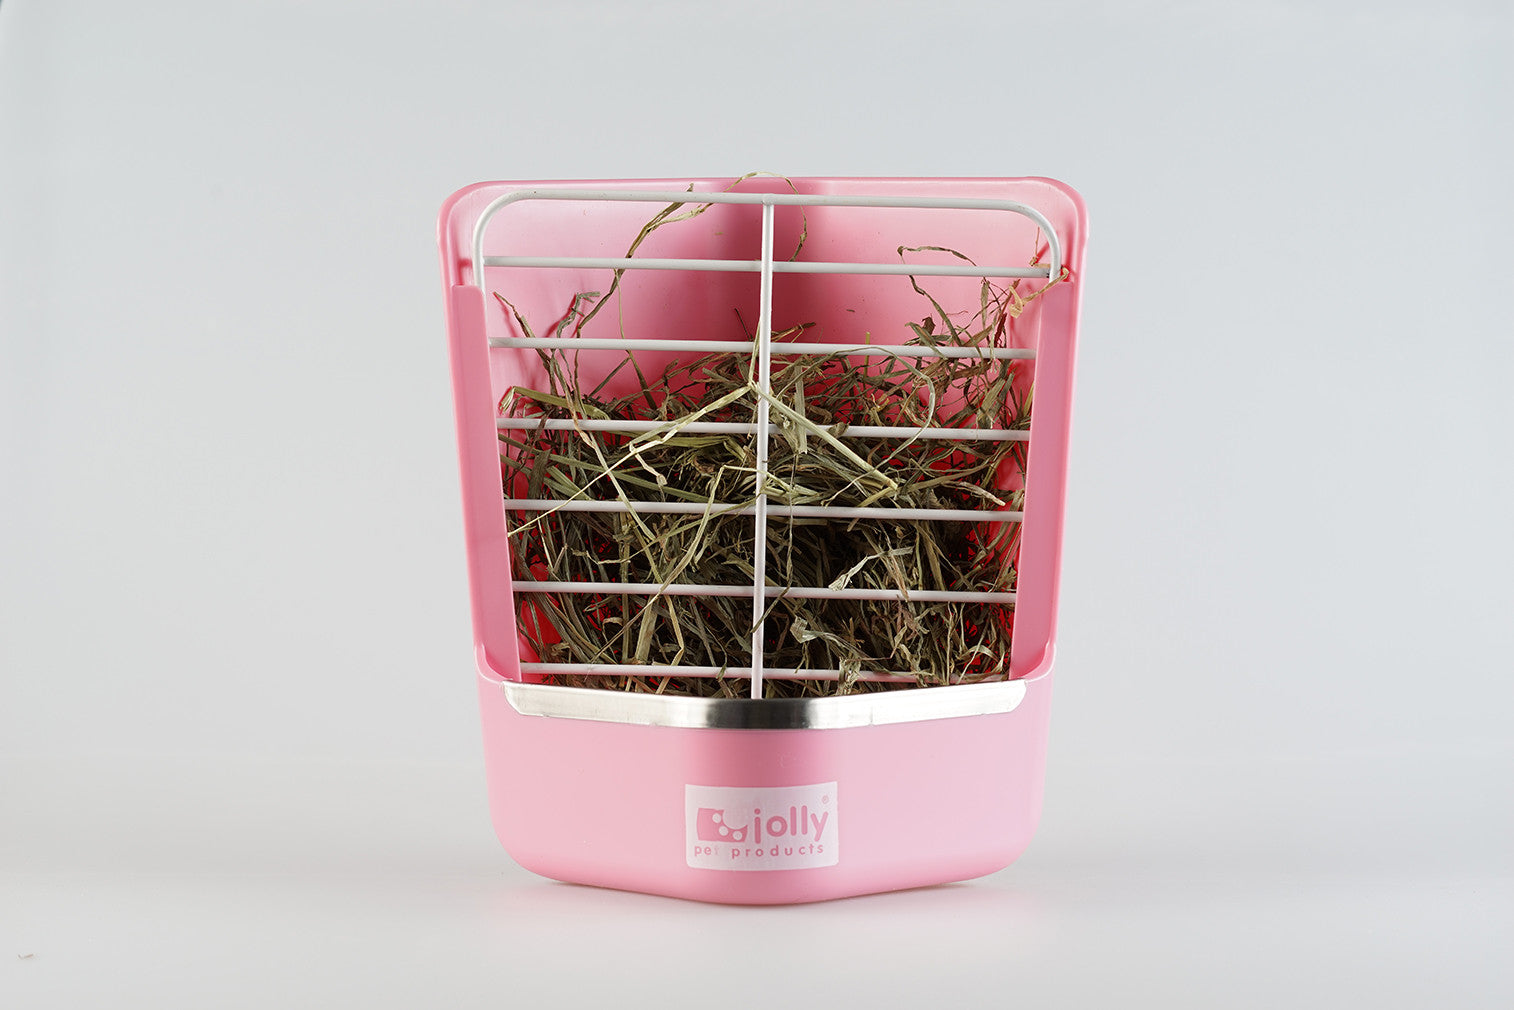 JOLLY – 2 in 1 Hay Rack and Feeding Bowl